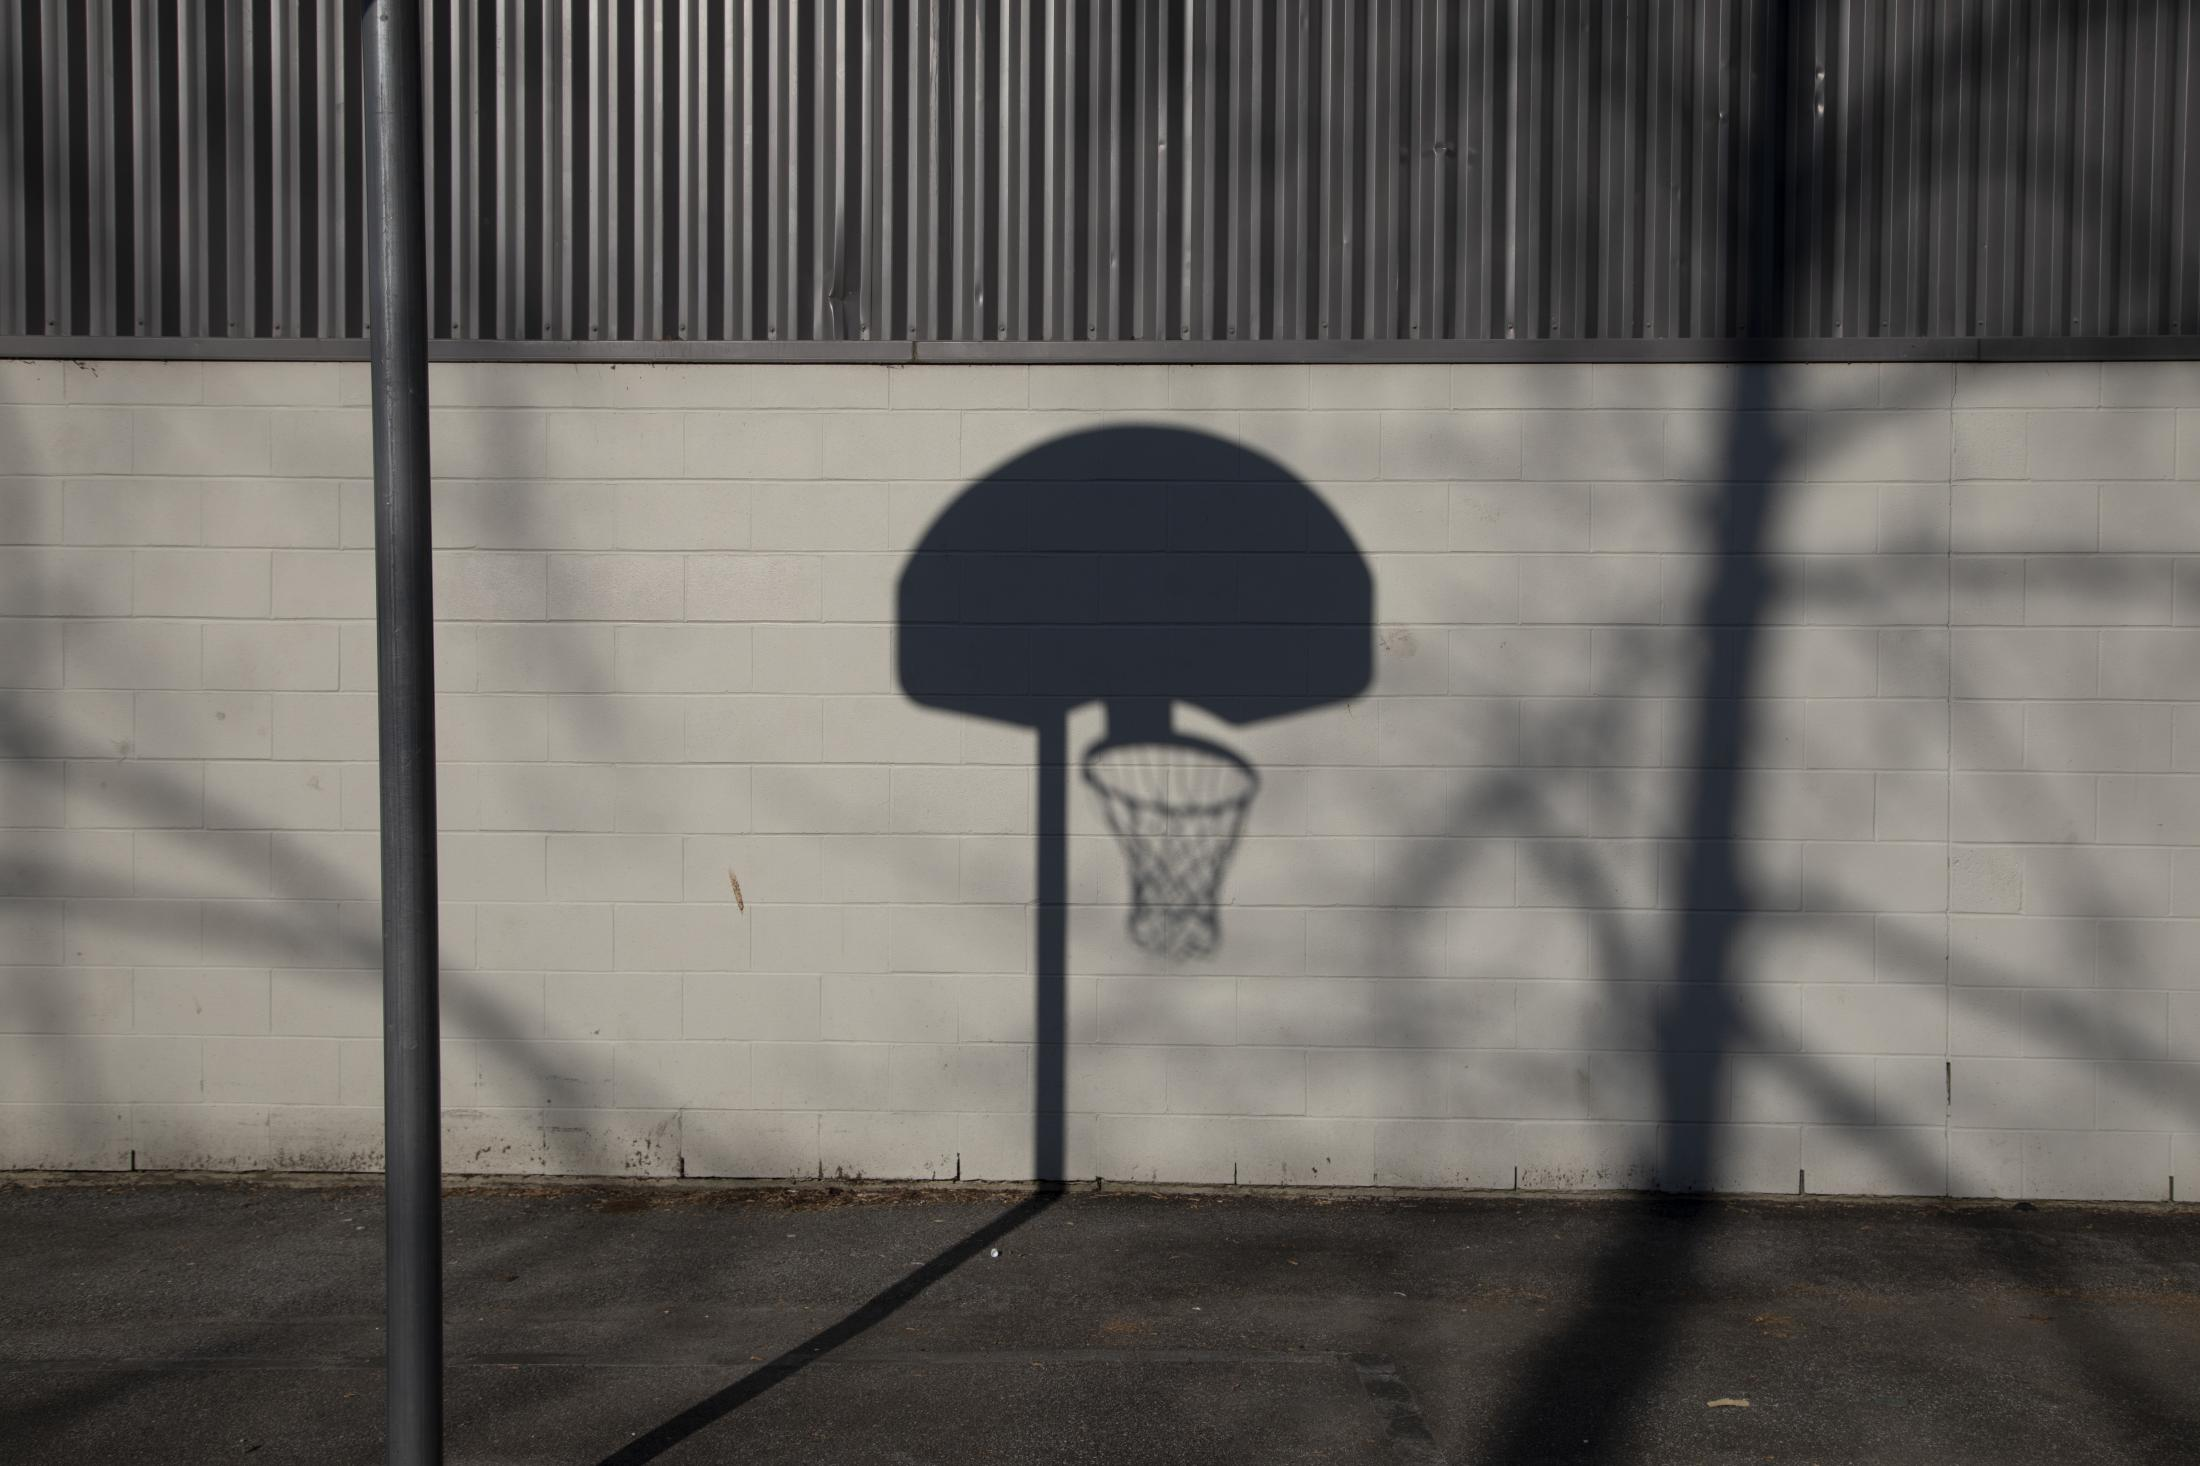 The shadow of a basketball hoop is seen at Carson Graham Secondary School in North Vancouver, B.C., on Friday, March 20, 2020. Effective Friday, March 20, 2020, the City and District of North Vancouver have closed all playgrounds and playing fields in an attempt to curb the spread of COVID-19. North Vancouver has been a hotspot of COVID-19, with ten deaths connected to the Lynn Valley Care Centre as of Monday, March 23, 2020.